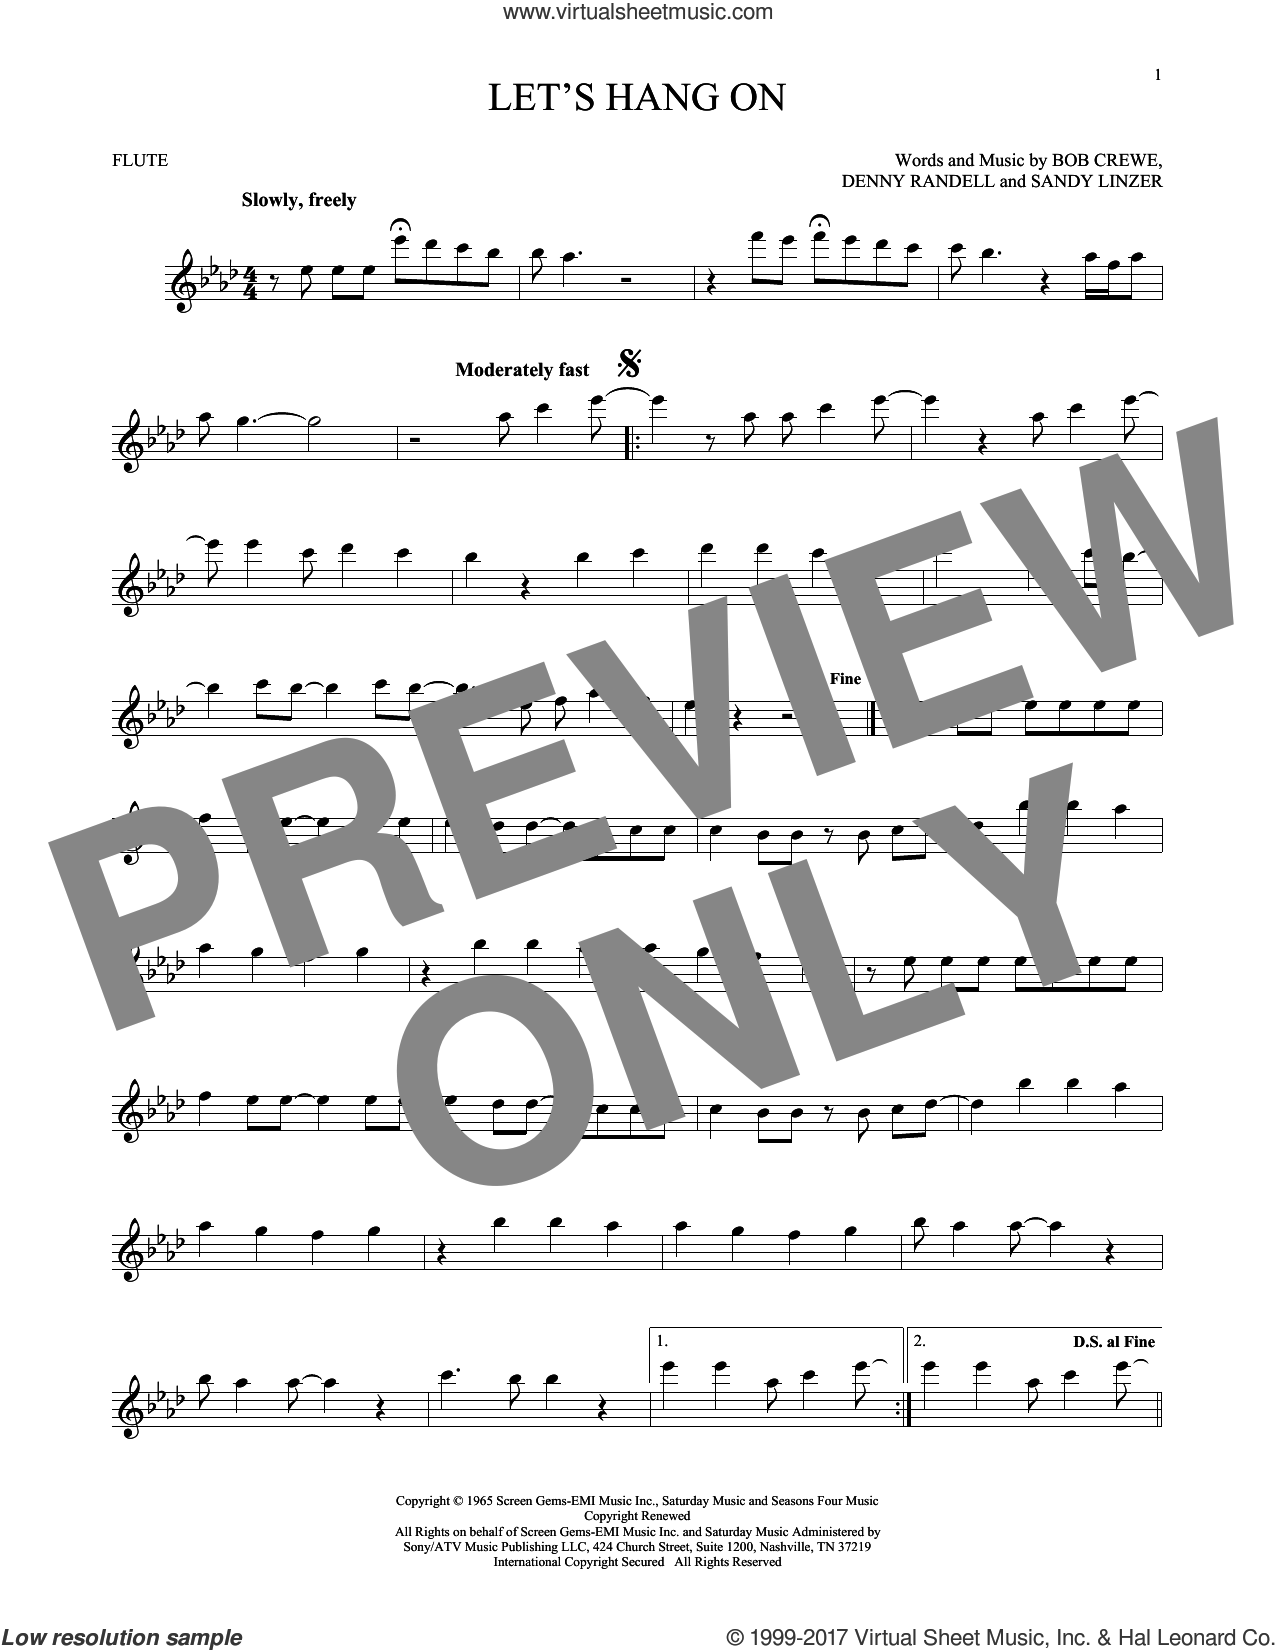 Let's Hang On sheet music for flute solo by The 4 Seasons, Bob Crewe, Denny Randell and Sandy Linzer, intermediate skill level